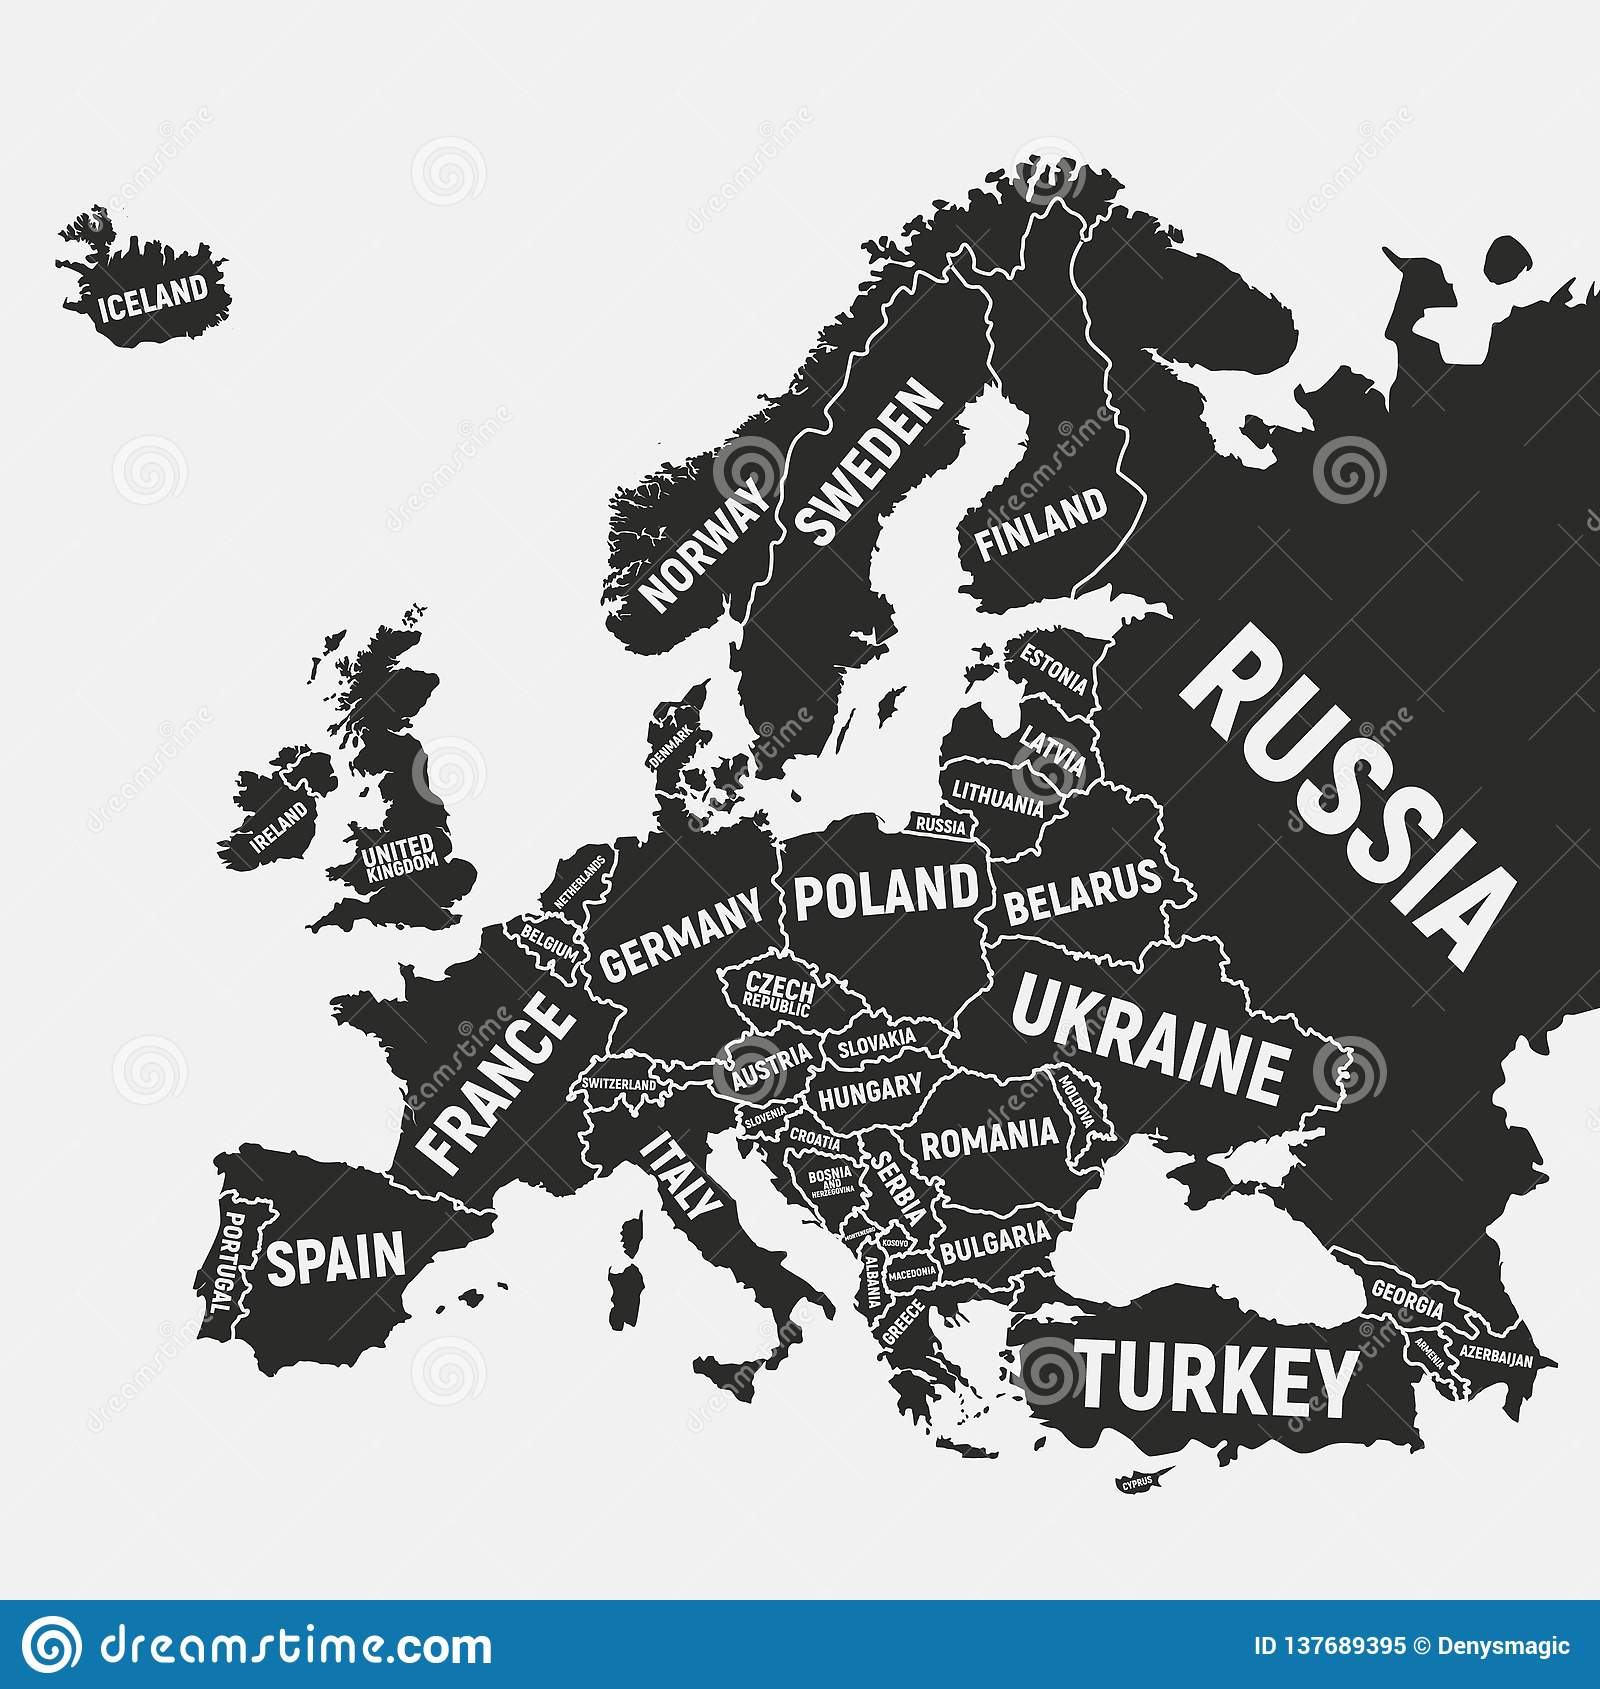 Europe Map. Poster Map Of Europe With Country Names. Europe ...